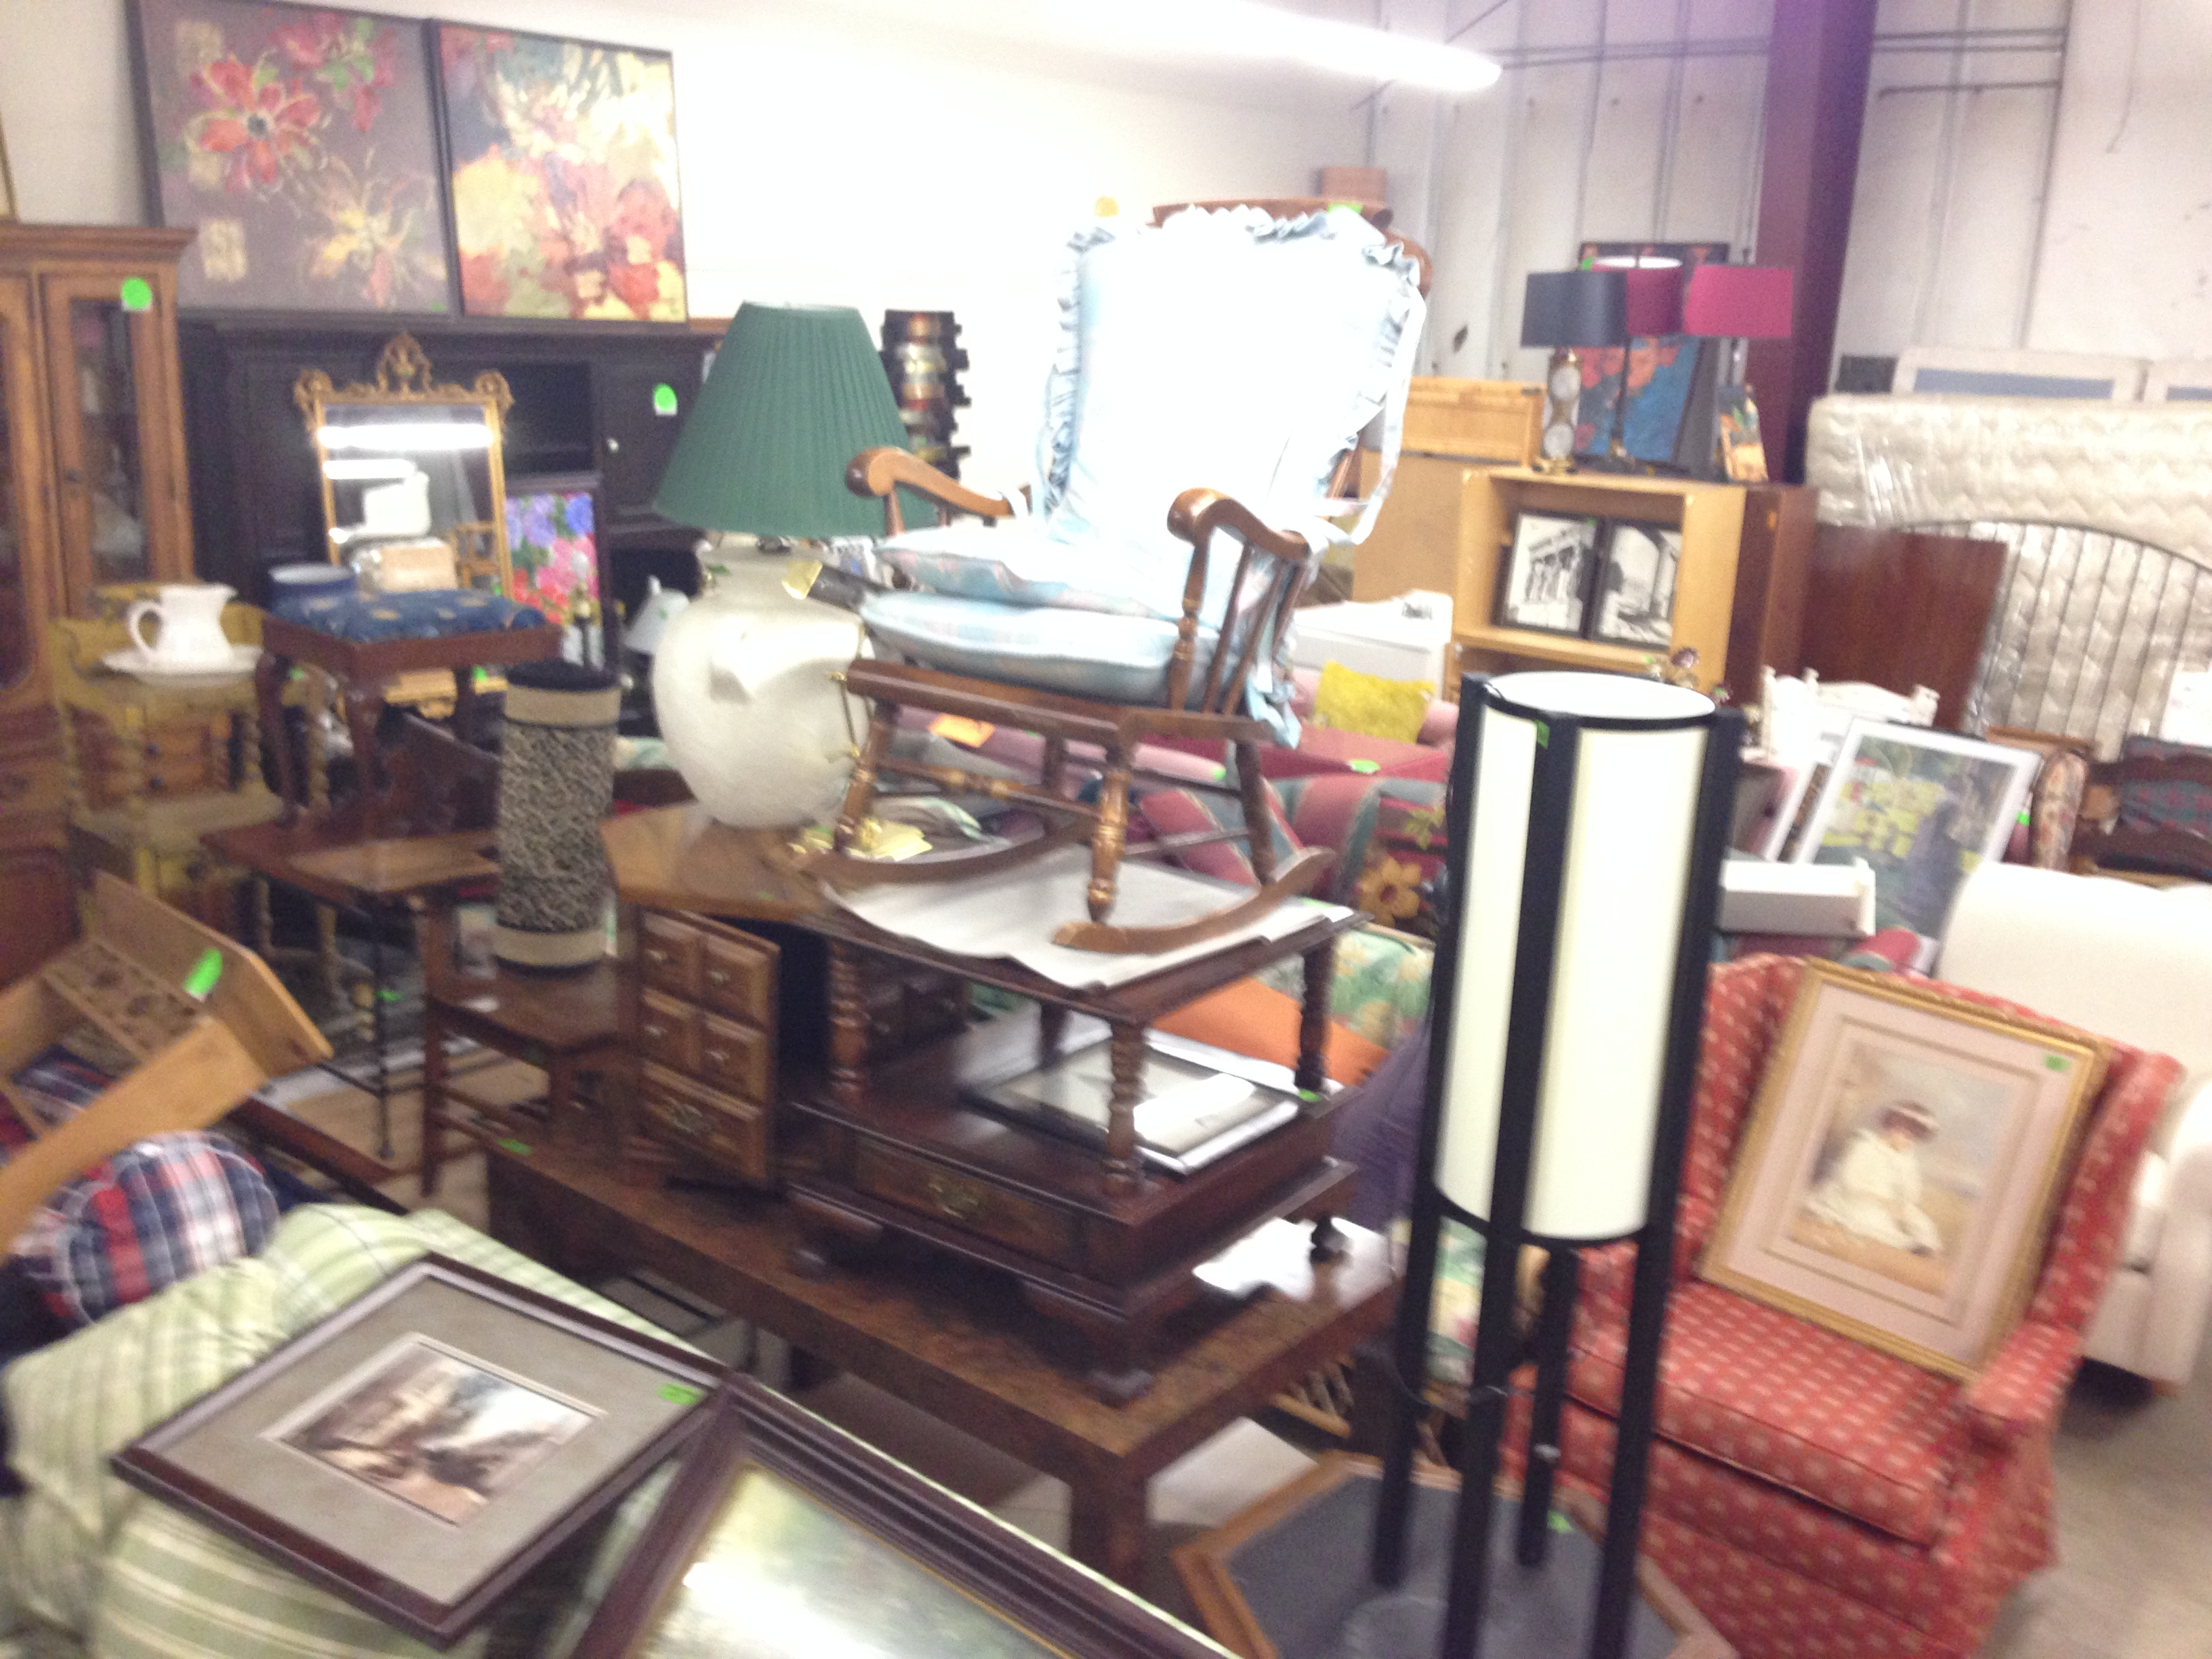 17th Annual Upscale Rummage Sale! All Proceeds Benefit Local  Non Profits!7000sf Warehouse Jam Packed With Collections From Over 21  Estate Sales! Furniture ...